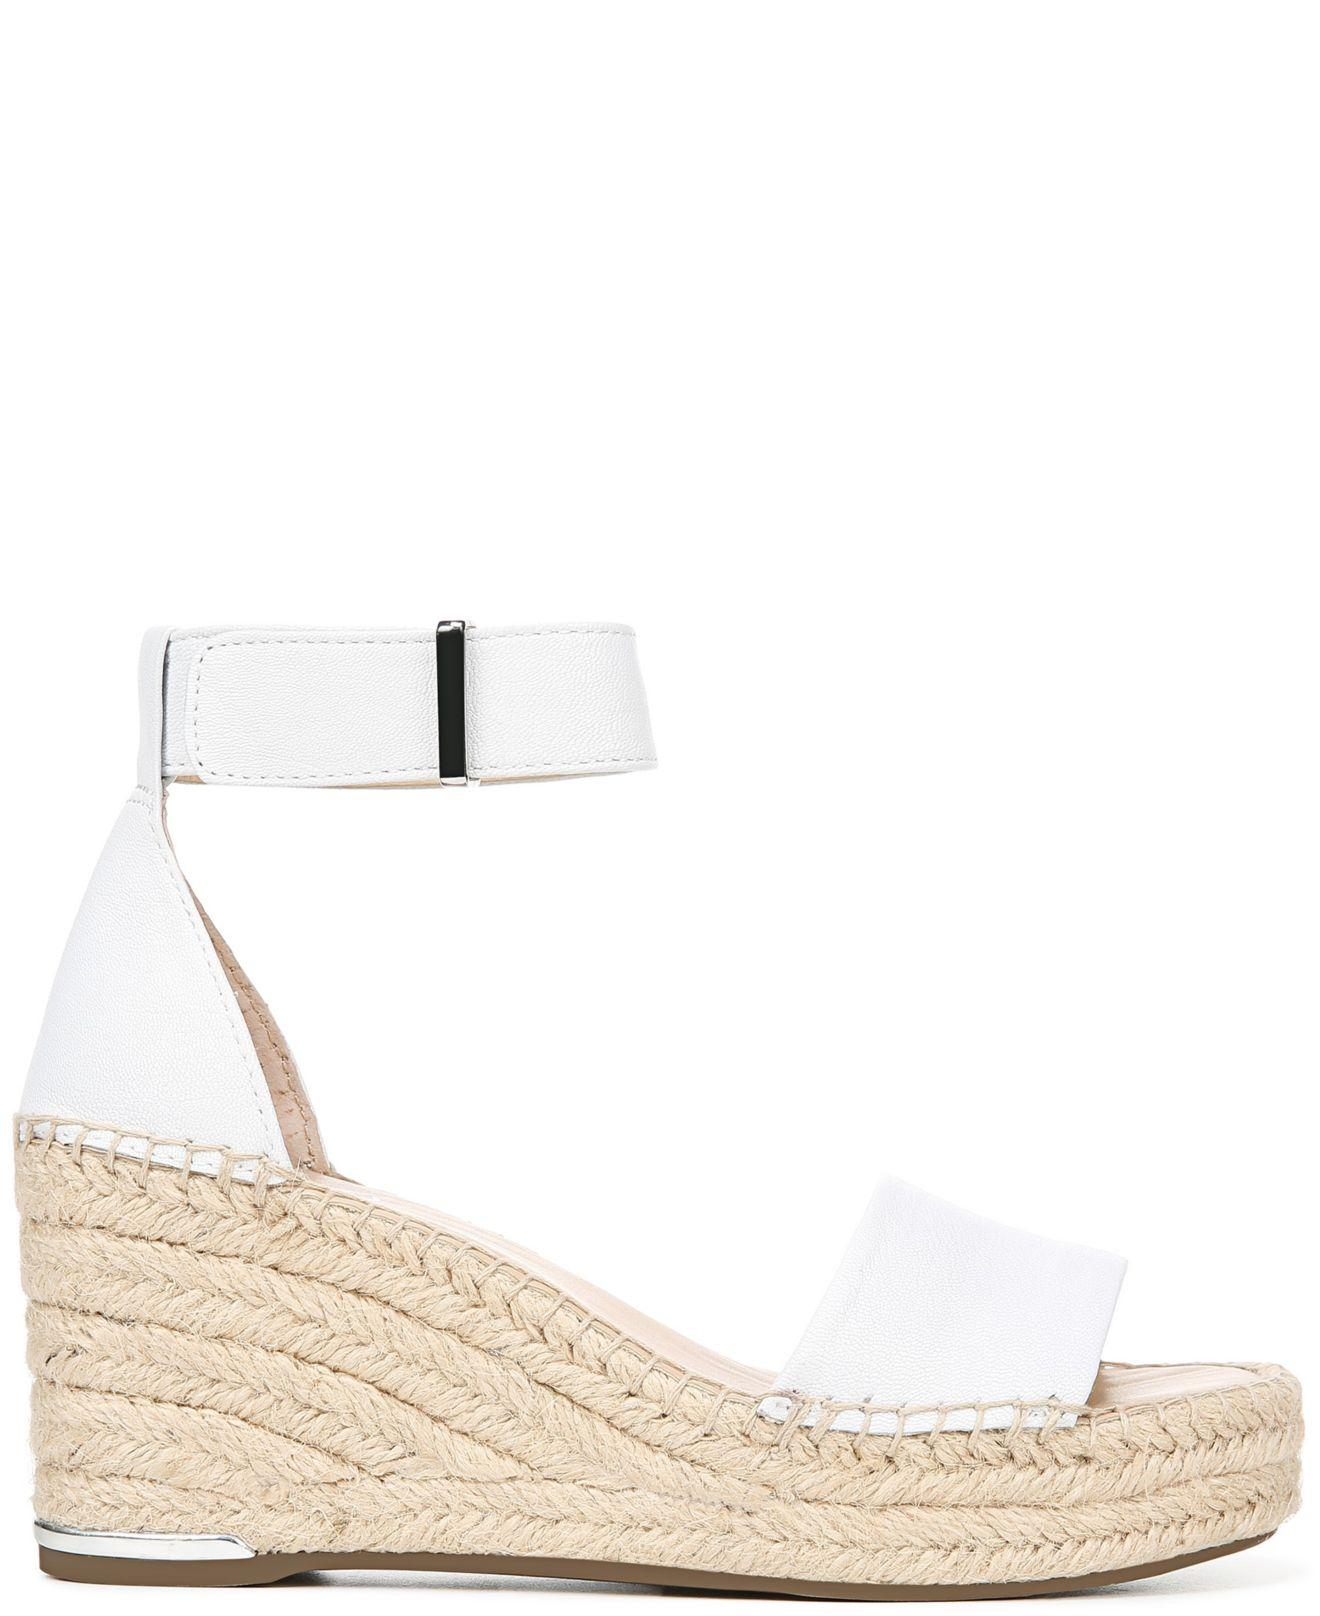 0d3e1d5449e Lyst - Franco Sarto Clemens Wedge Sandals in White